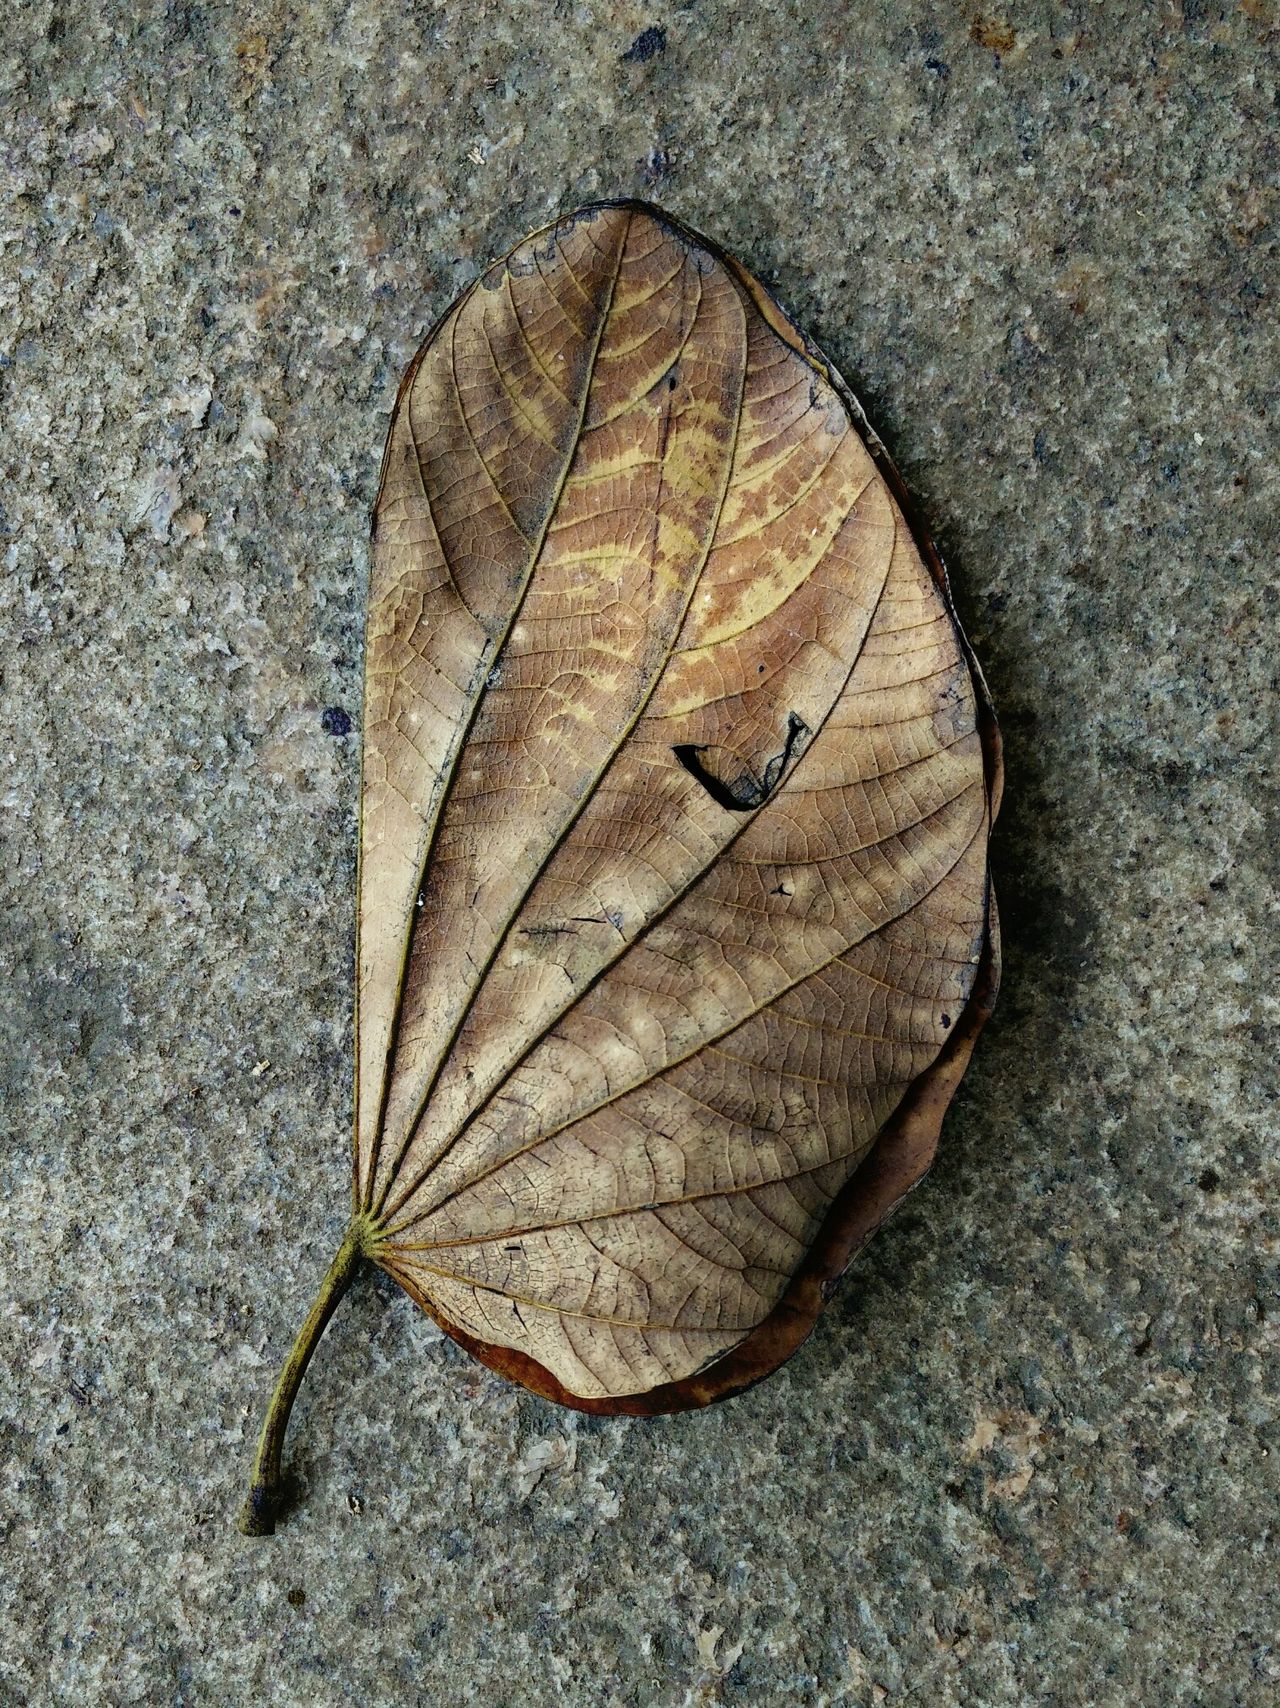 Dry Leaves Faded Fade Away Faded But Not Forgotten Faded Memories Faded But Still Beautiful Faded Glory Mobile Photography Mobile_photographer